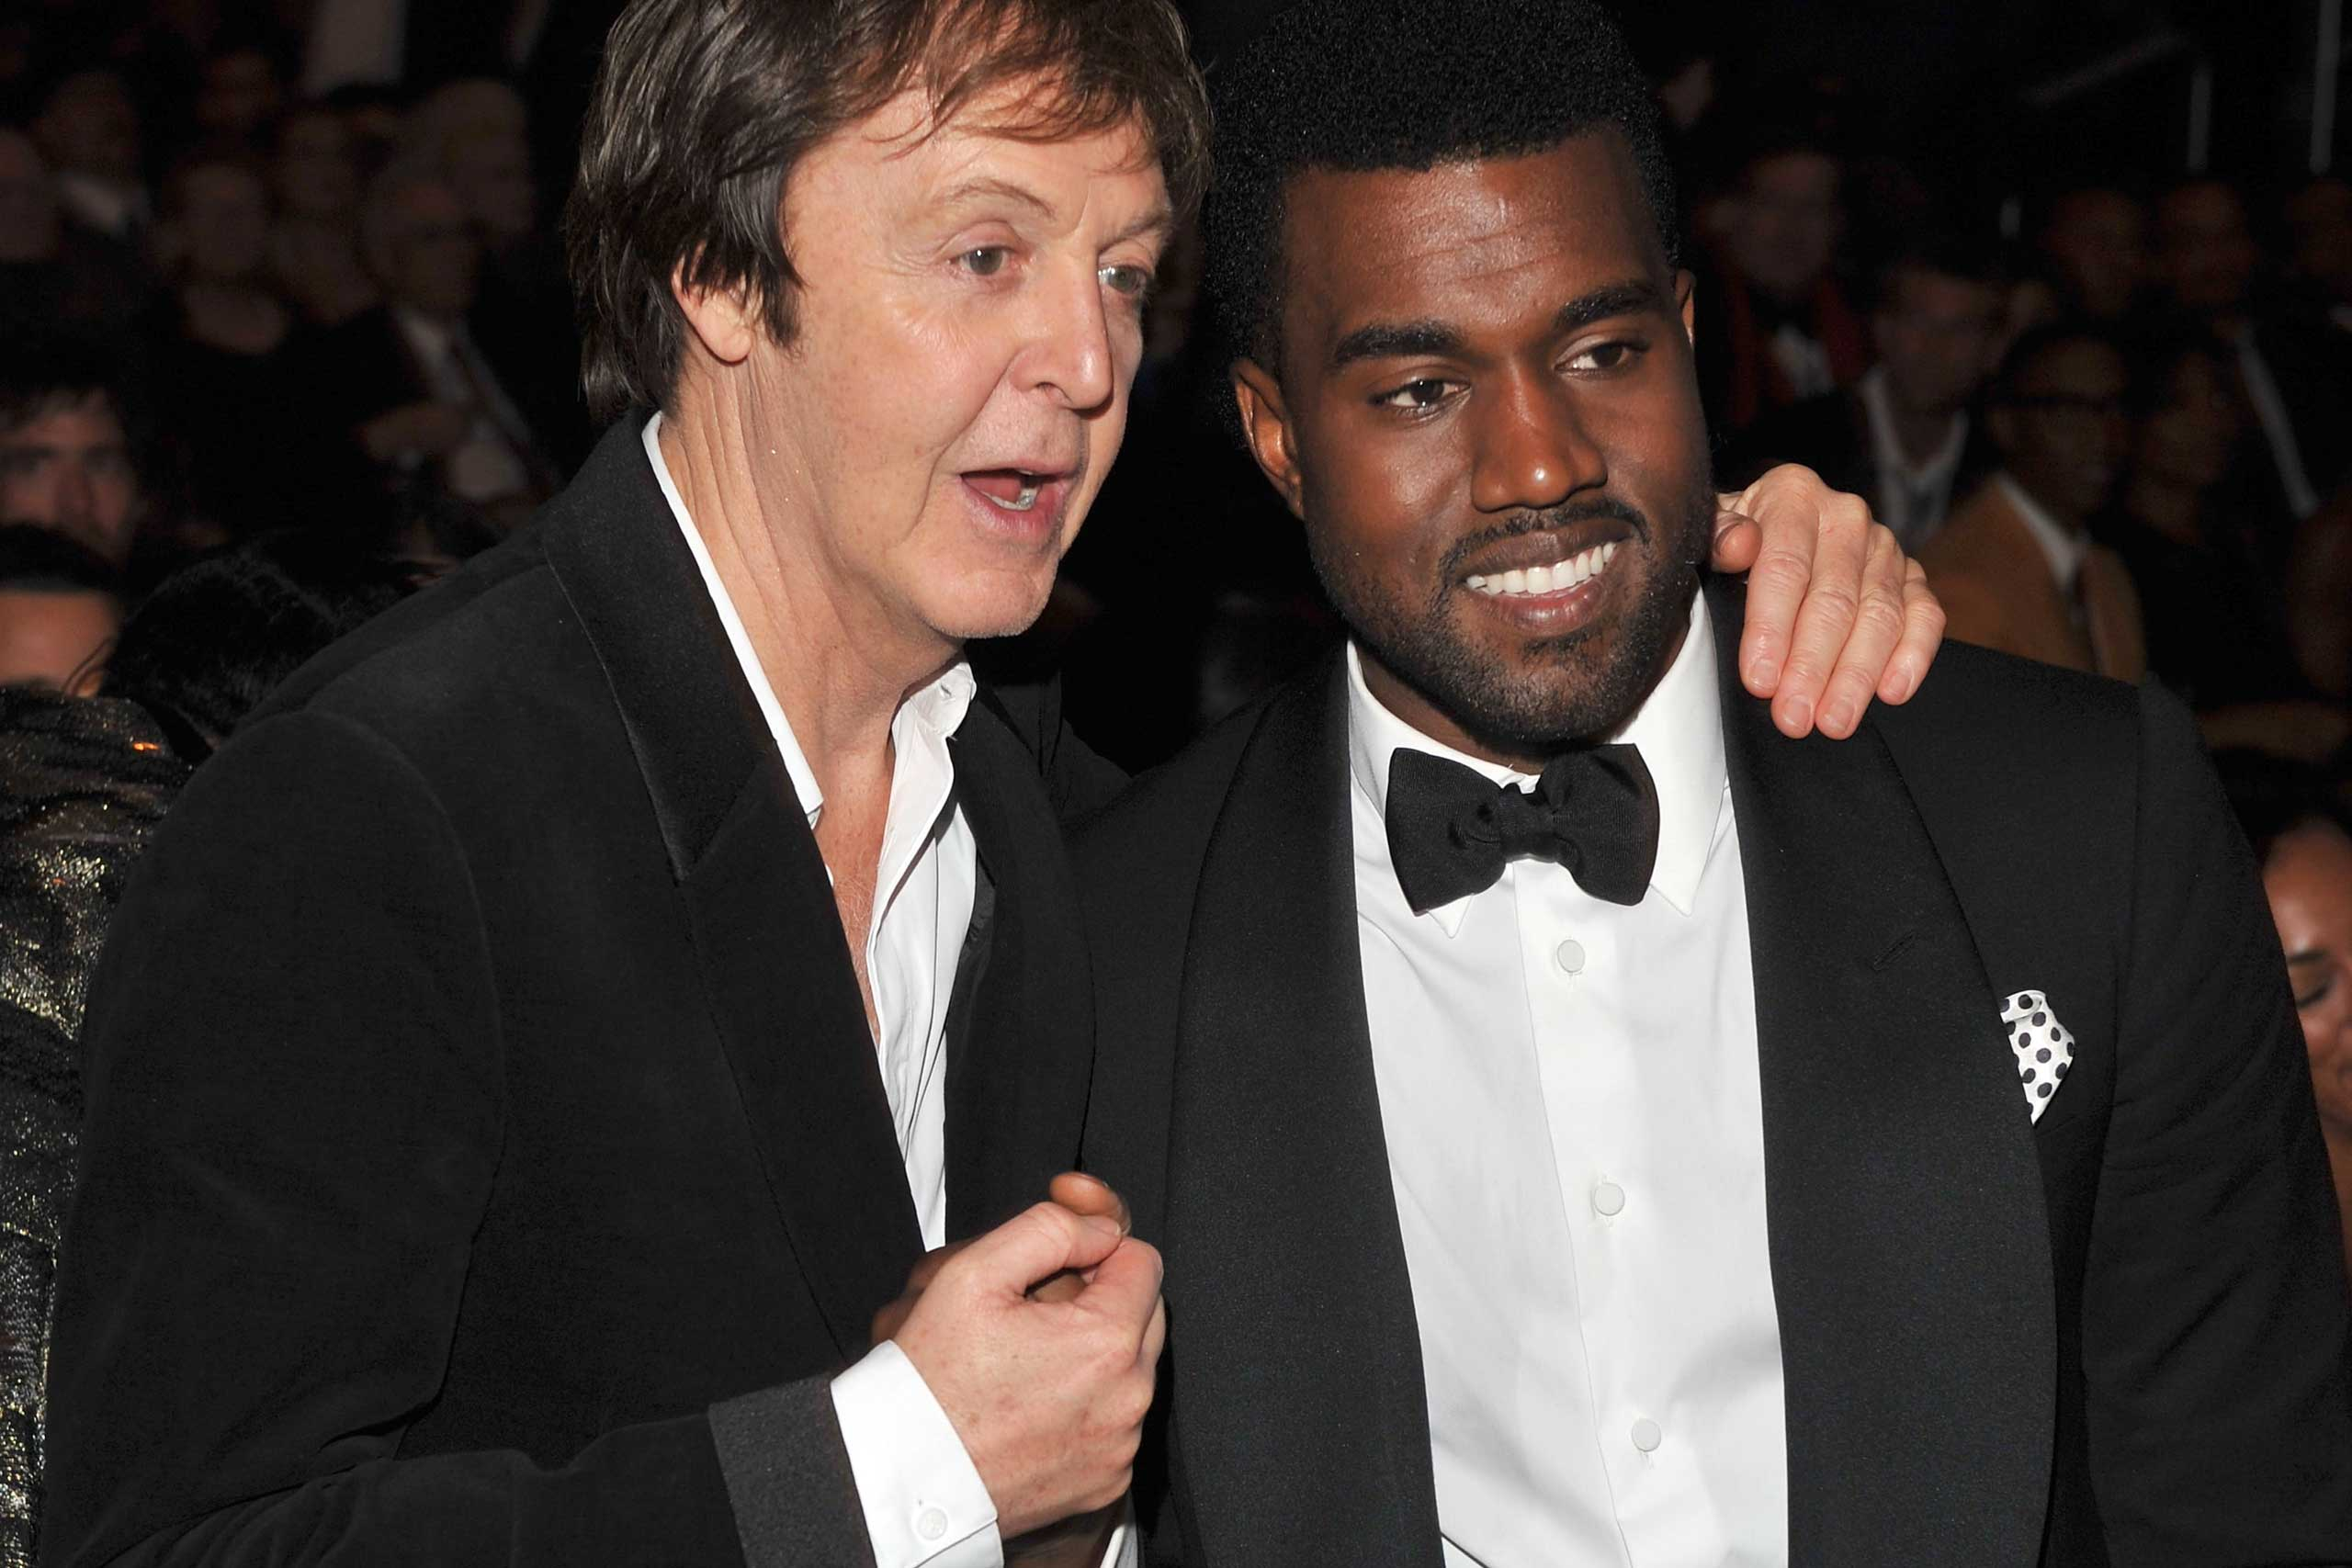 Musicians Paul McCartney and Kanye West together at the Grammy's in 2009.